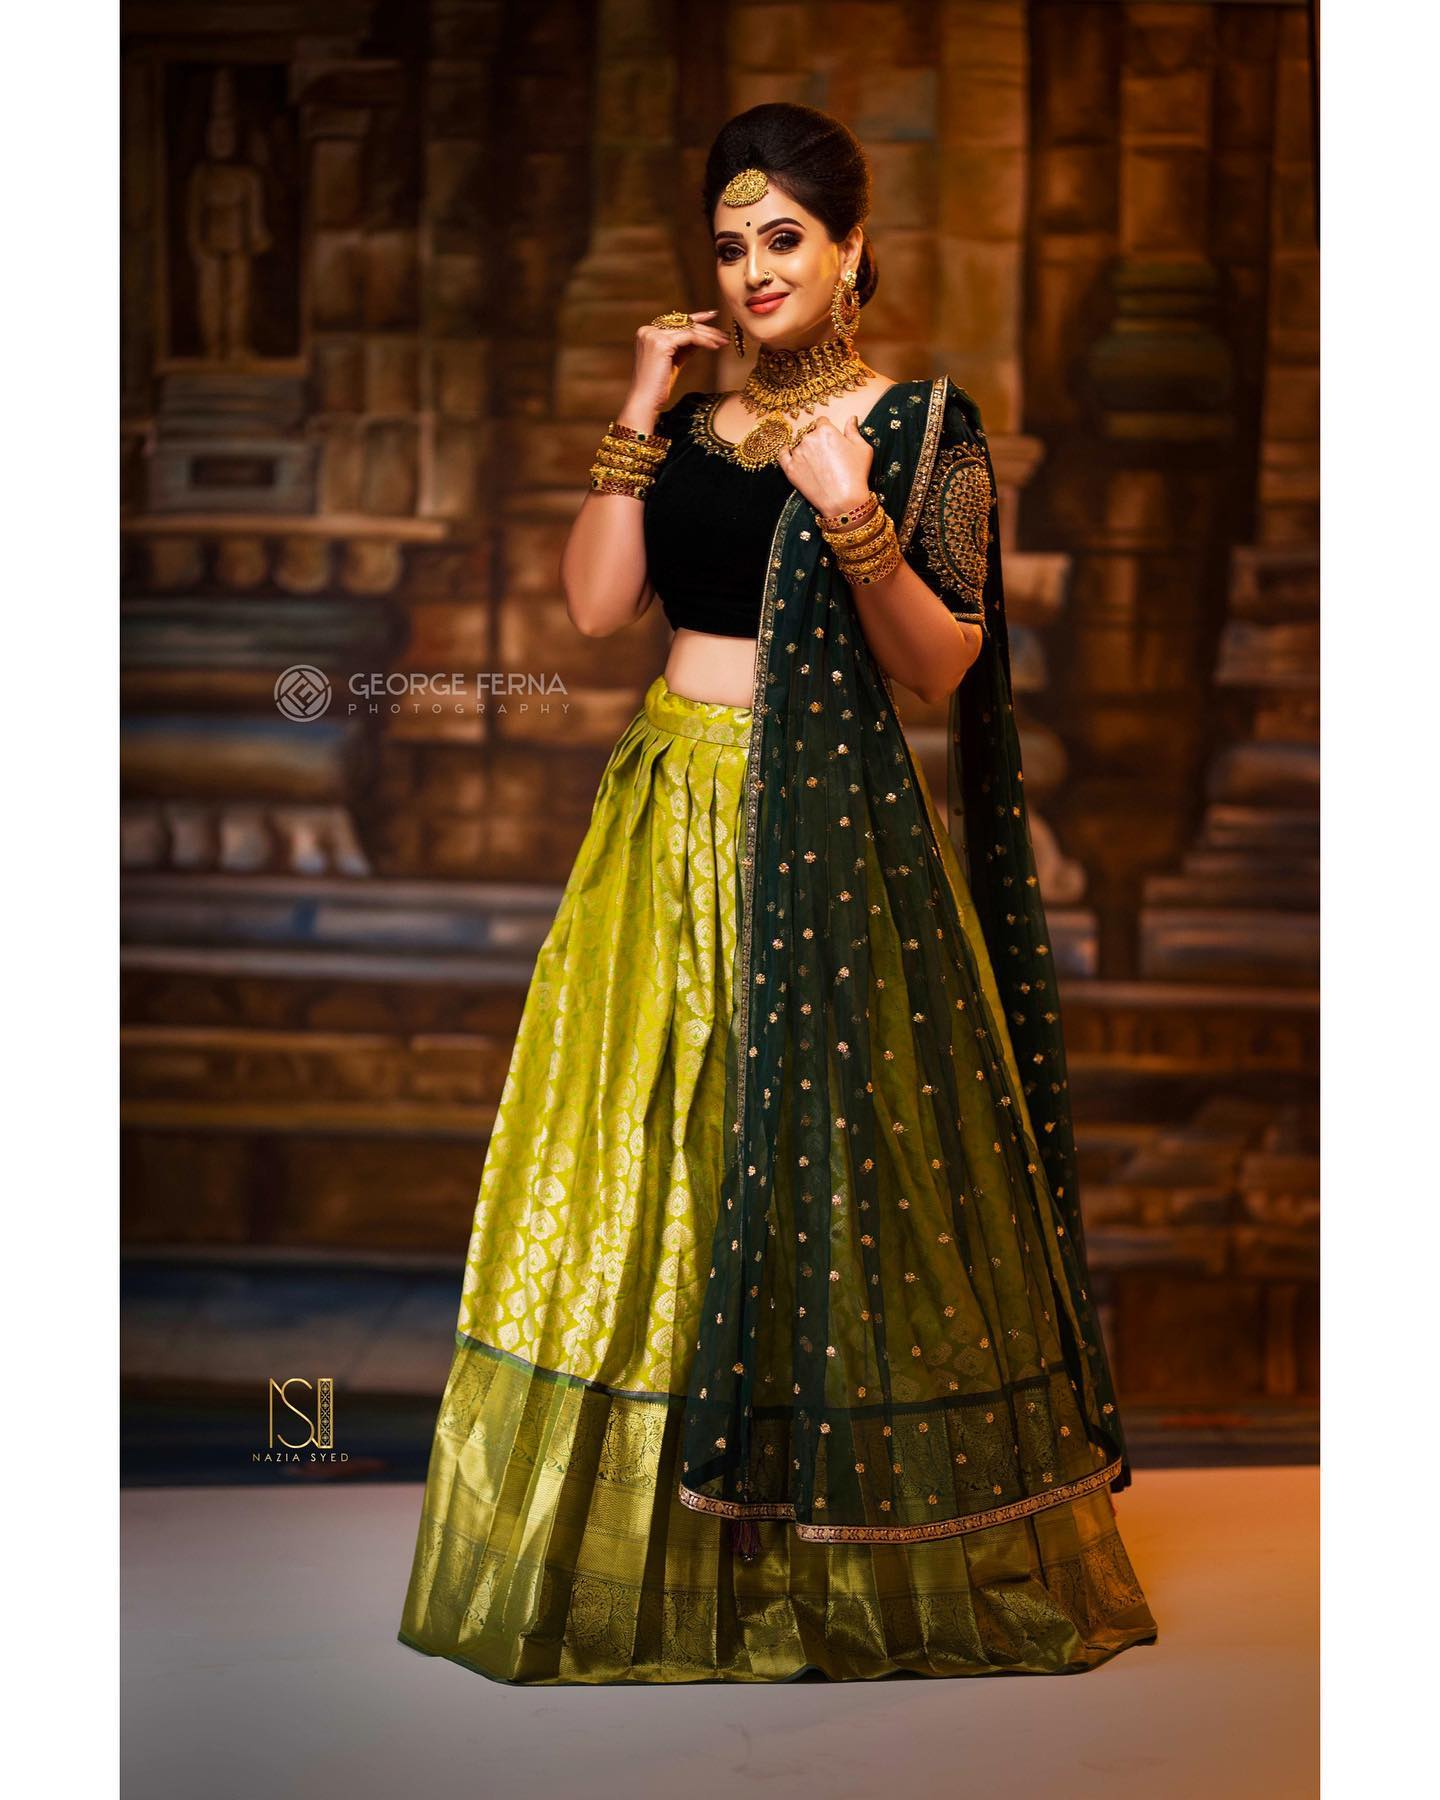 Style your classic velvet cut work blouse with exquisite lime green lehenga to stand out this wedding season! ✨ Dm or whatsapp to 7092586311 for more enquiries. 2021-07-30